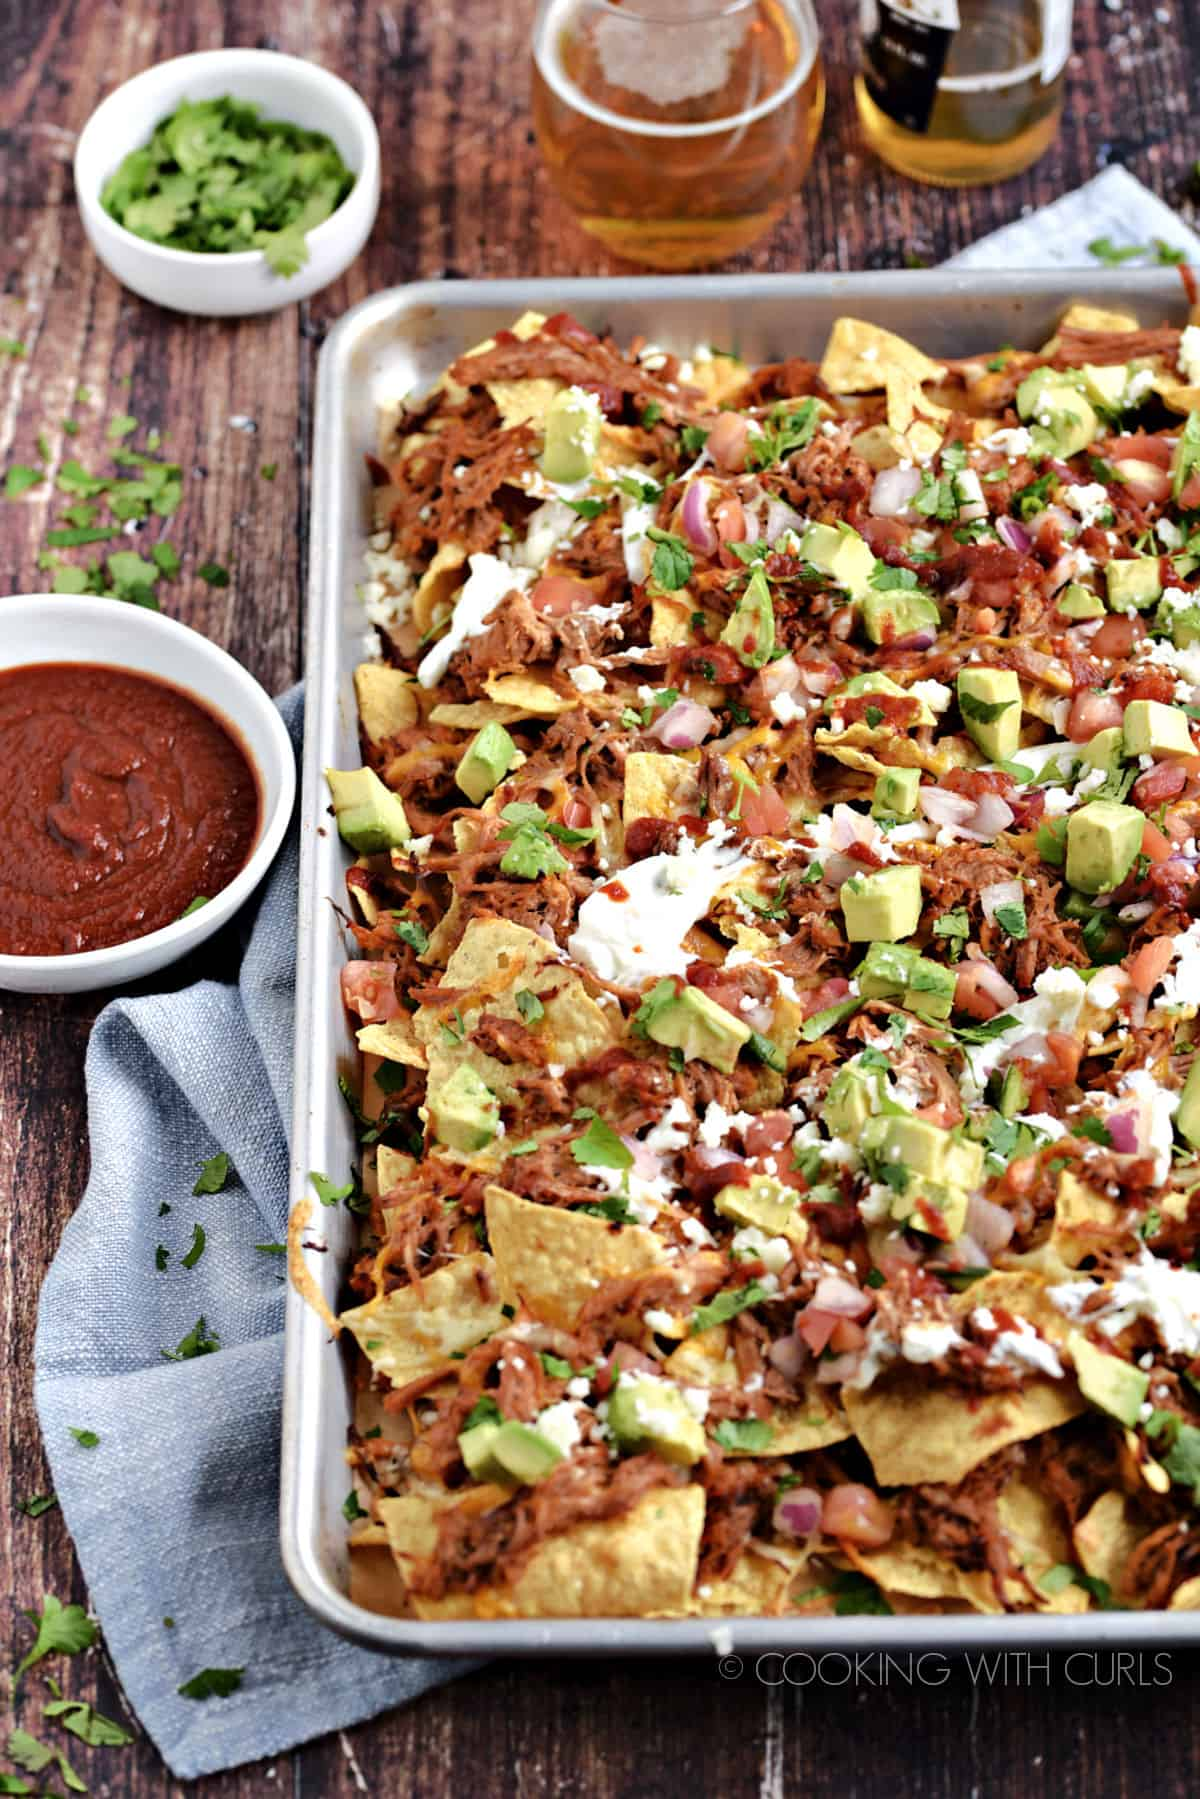 A sheet pan filled with Pulled Pork Nachos topped with avocado, sour cream, salsa and barbecue sauce.